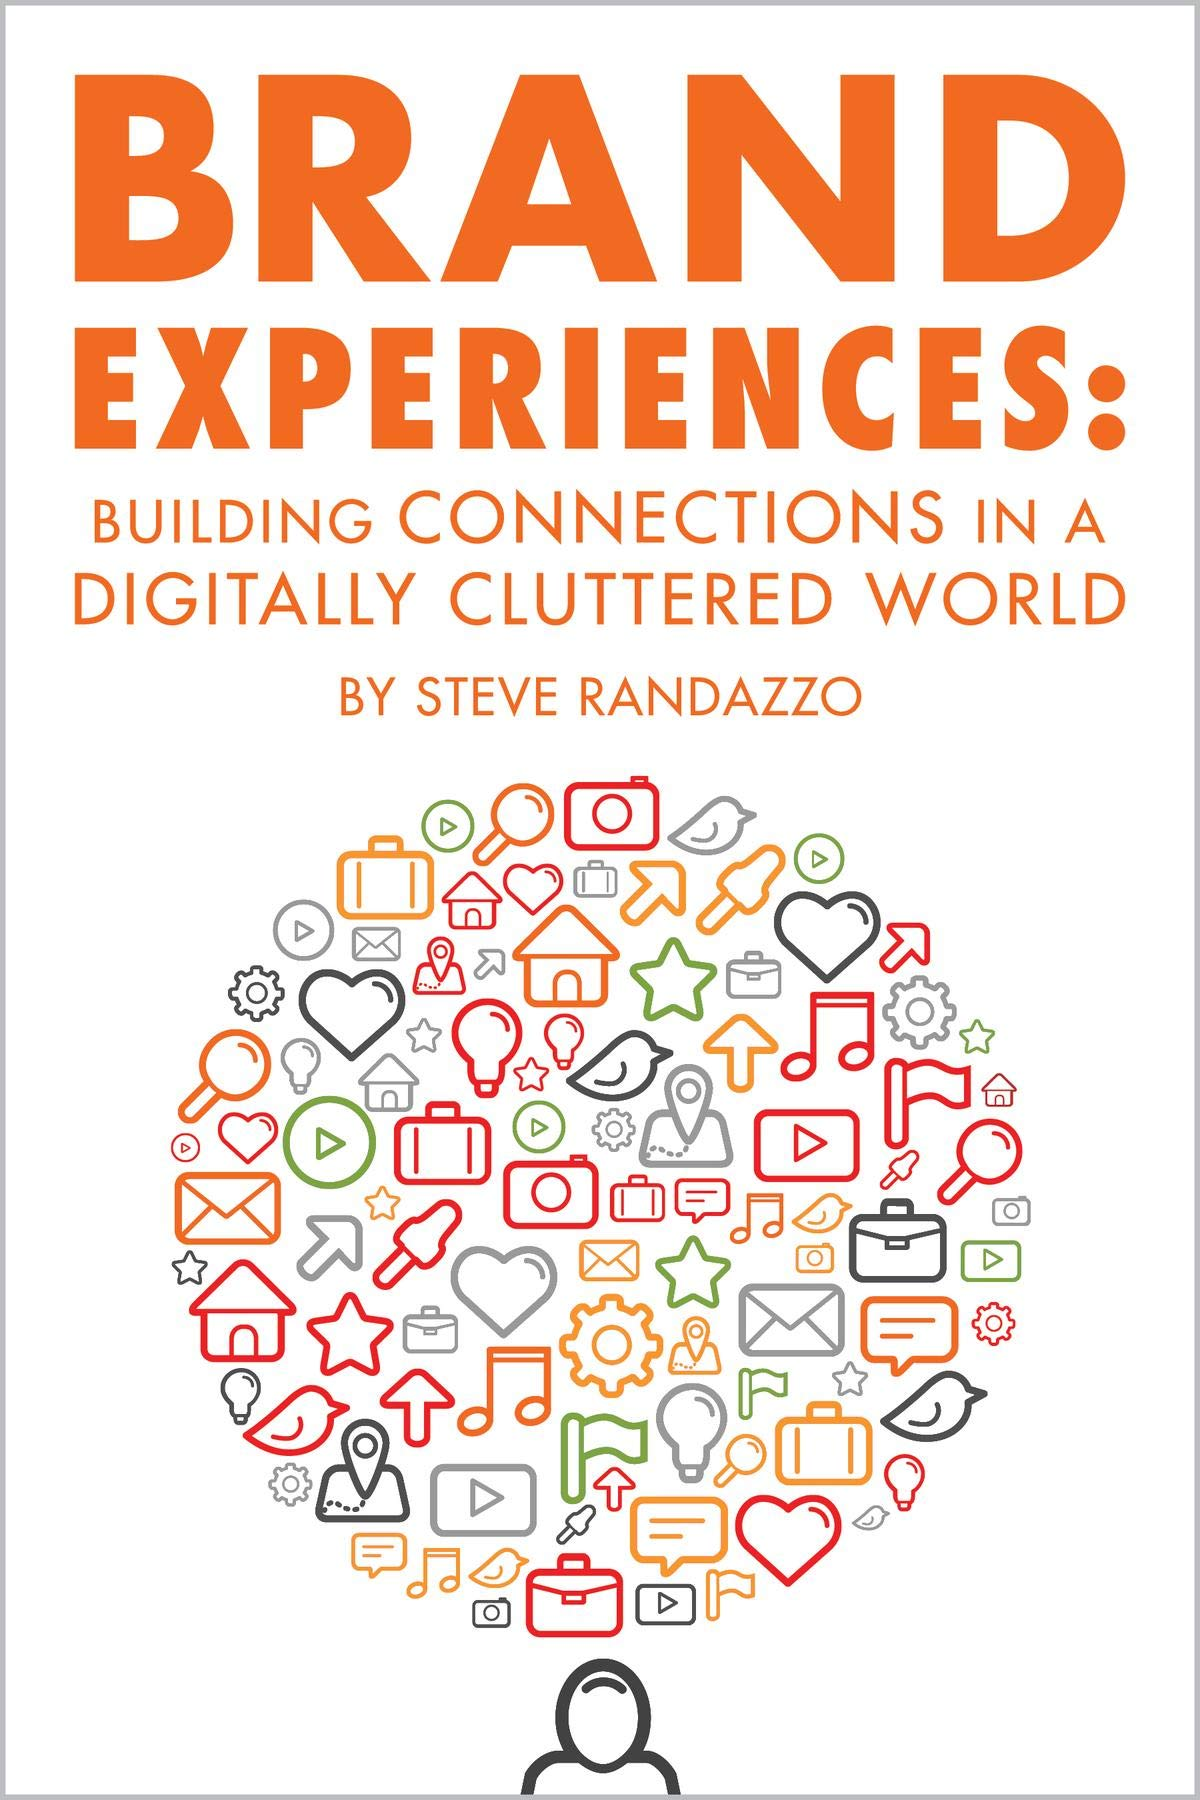 Brand Experiences: Building Connections in a Digitally Cluttered World